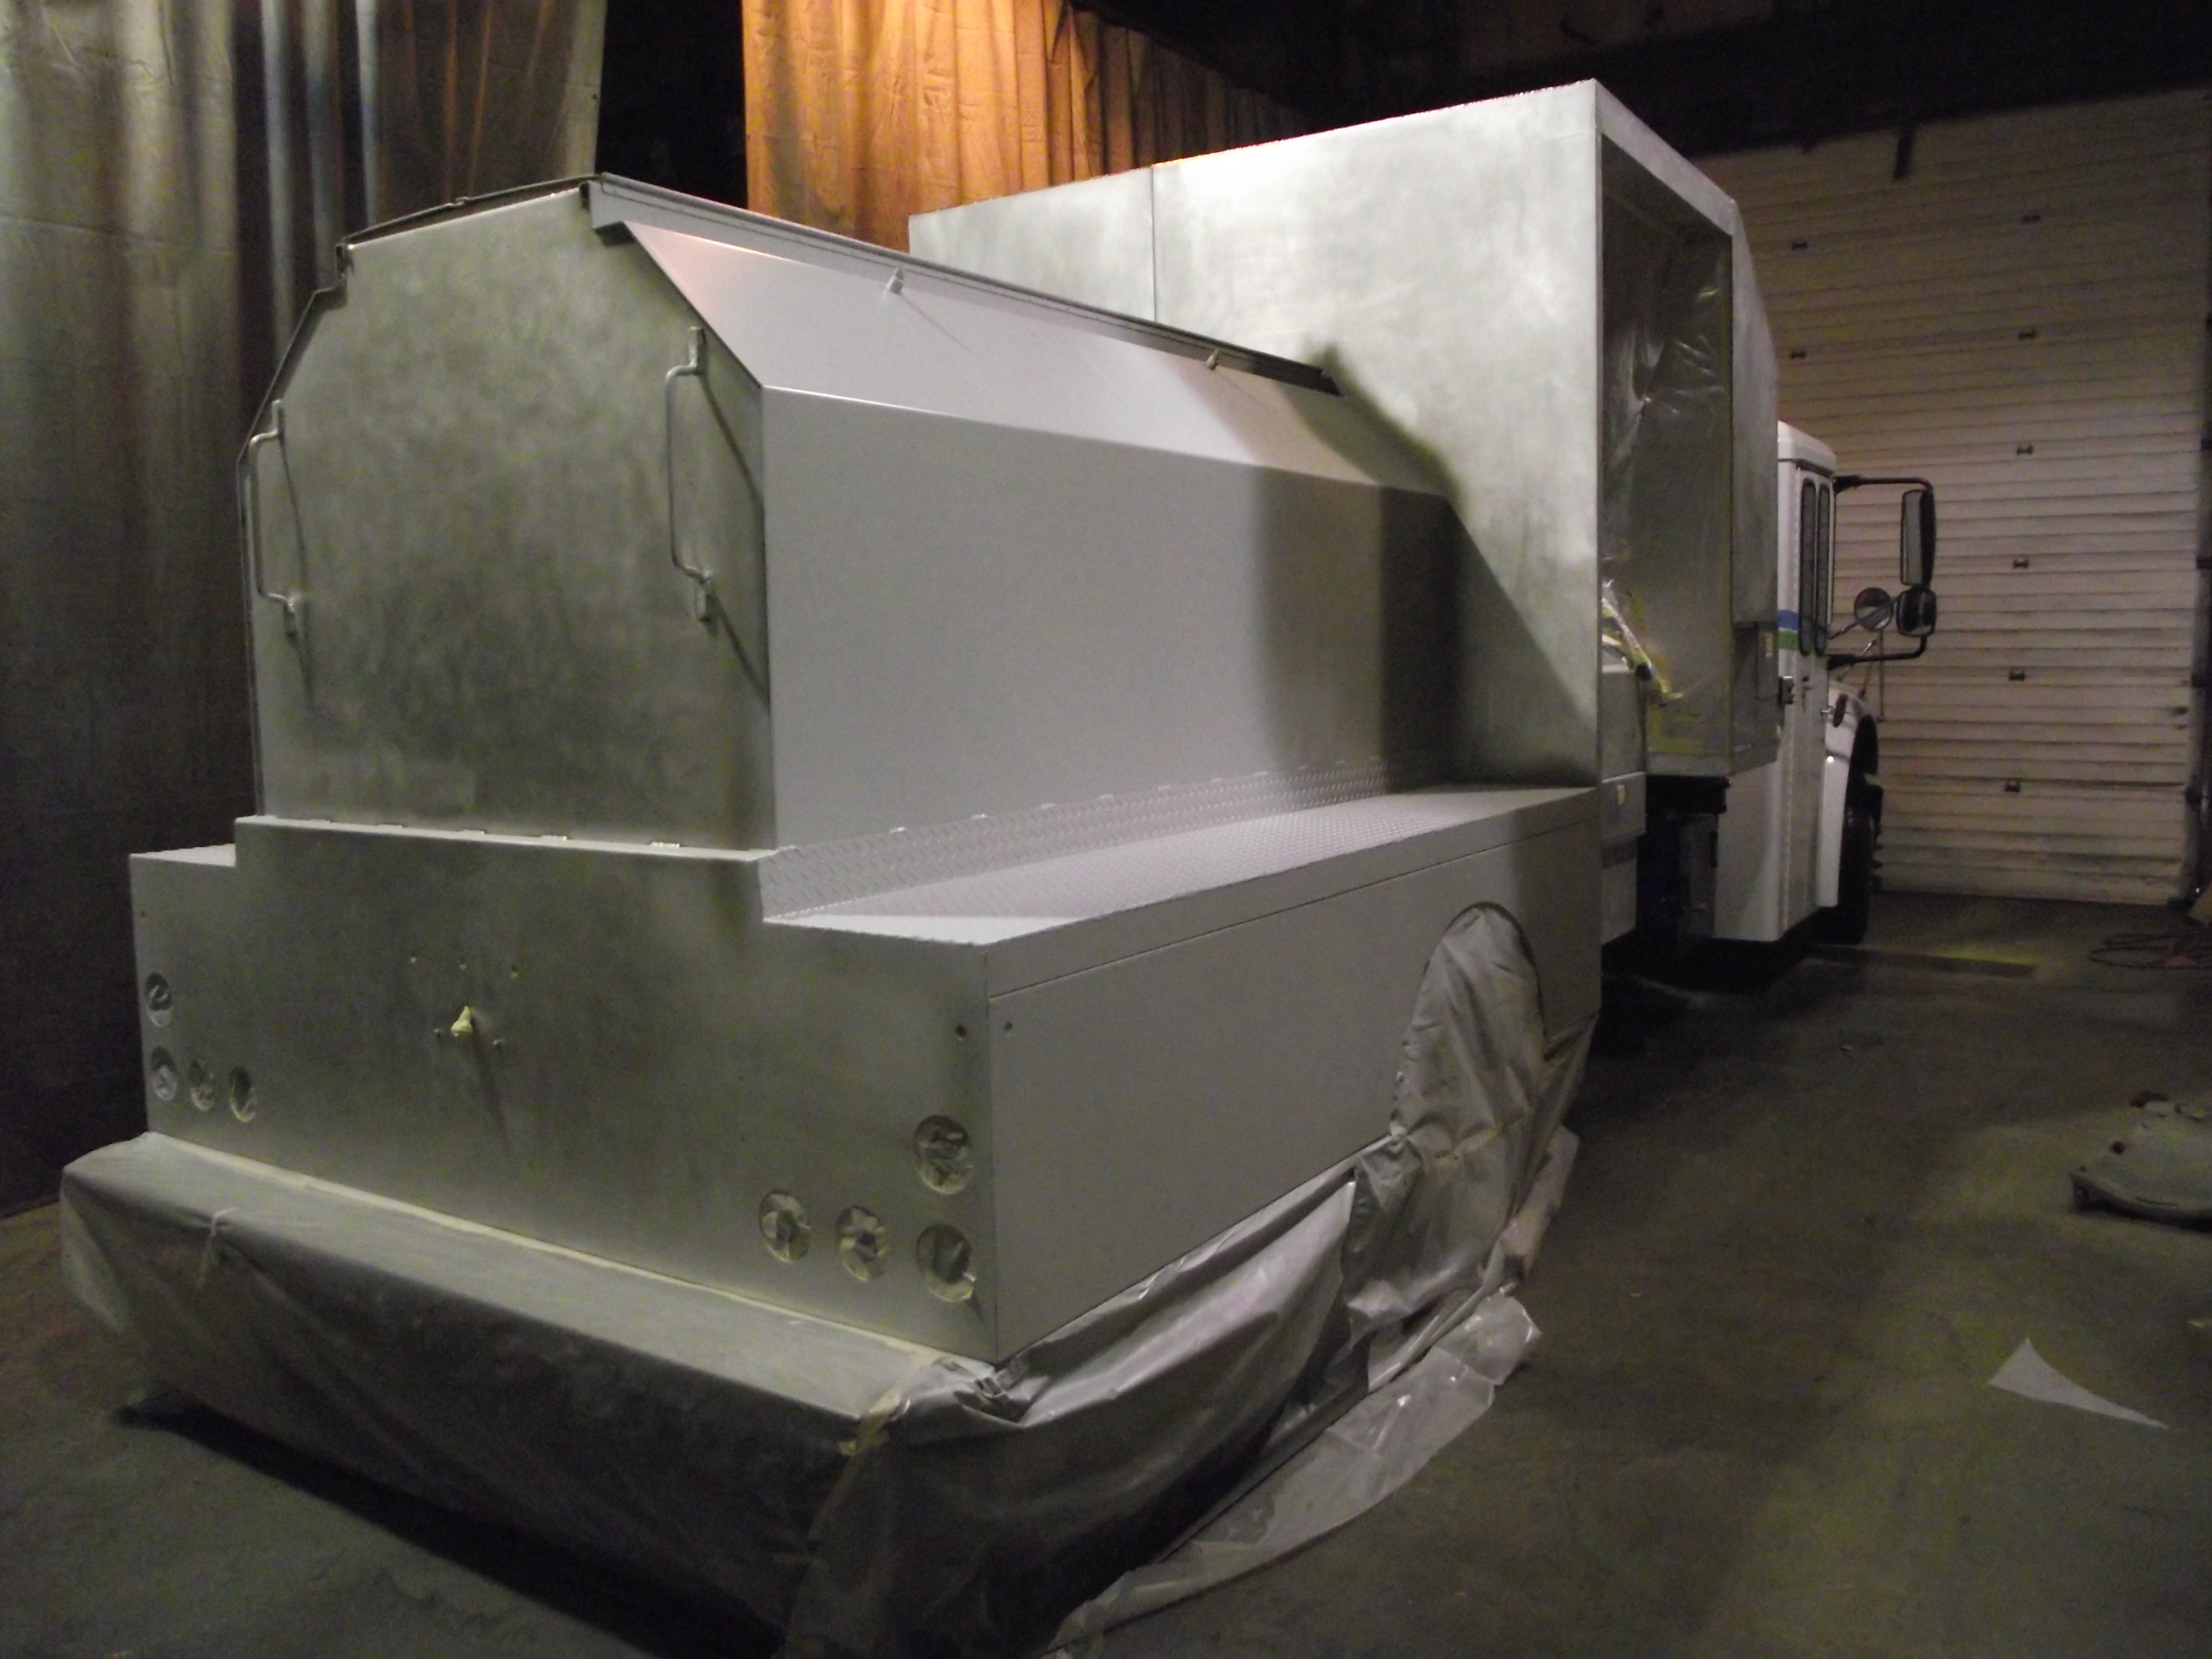 Lift Gate Repair >> A complete paint job with Imron Elite by Dupont